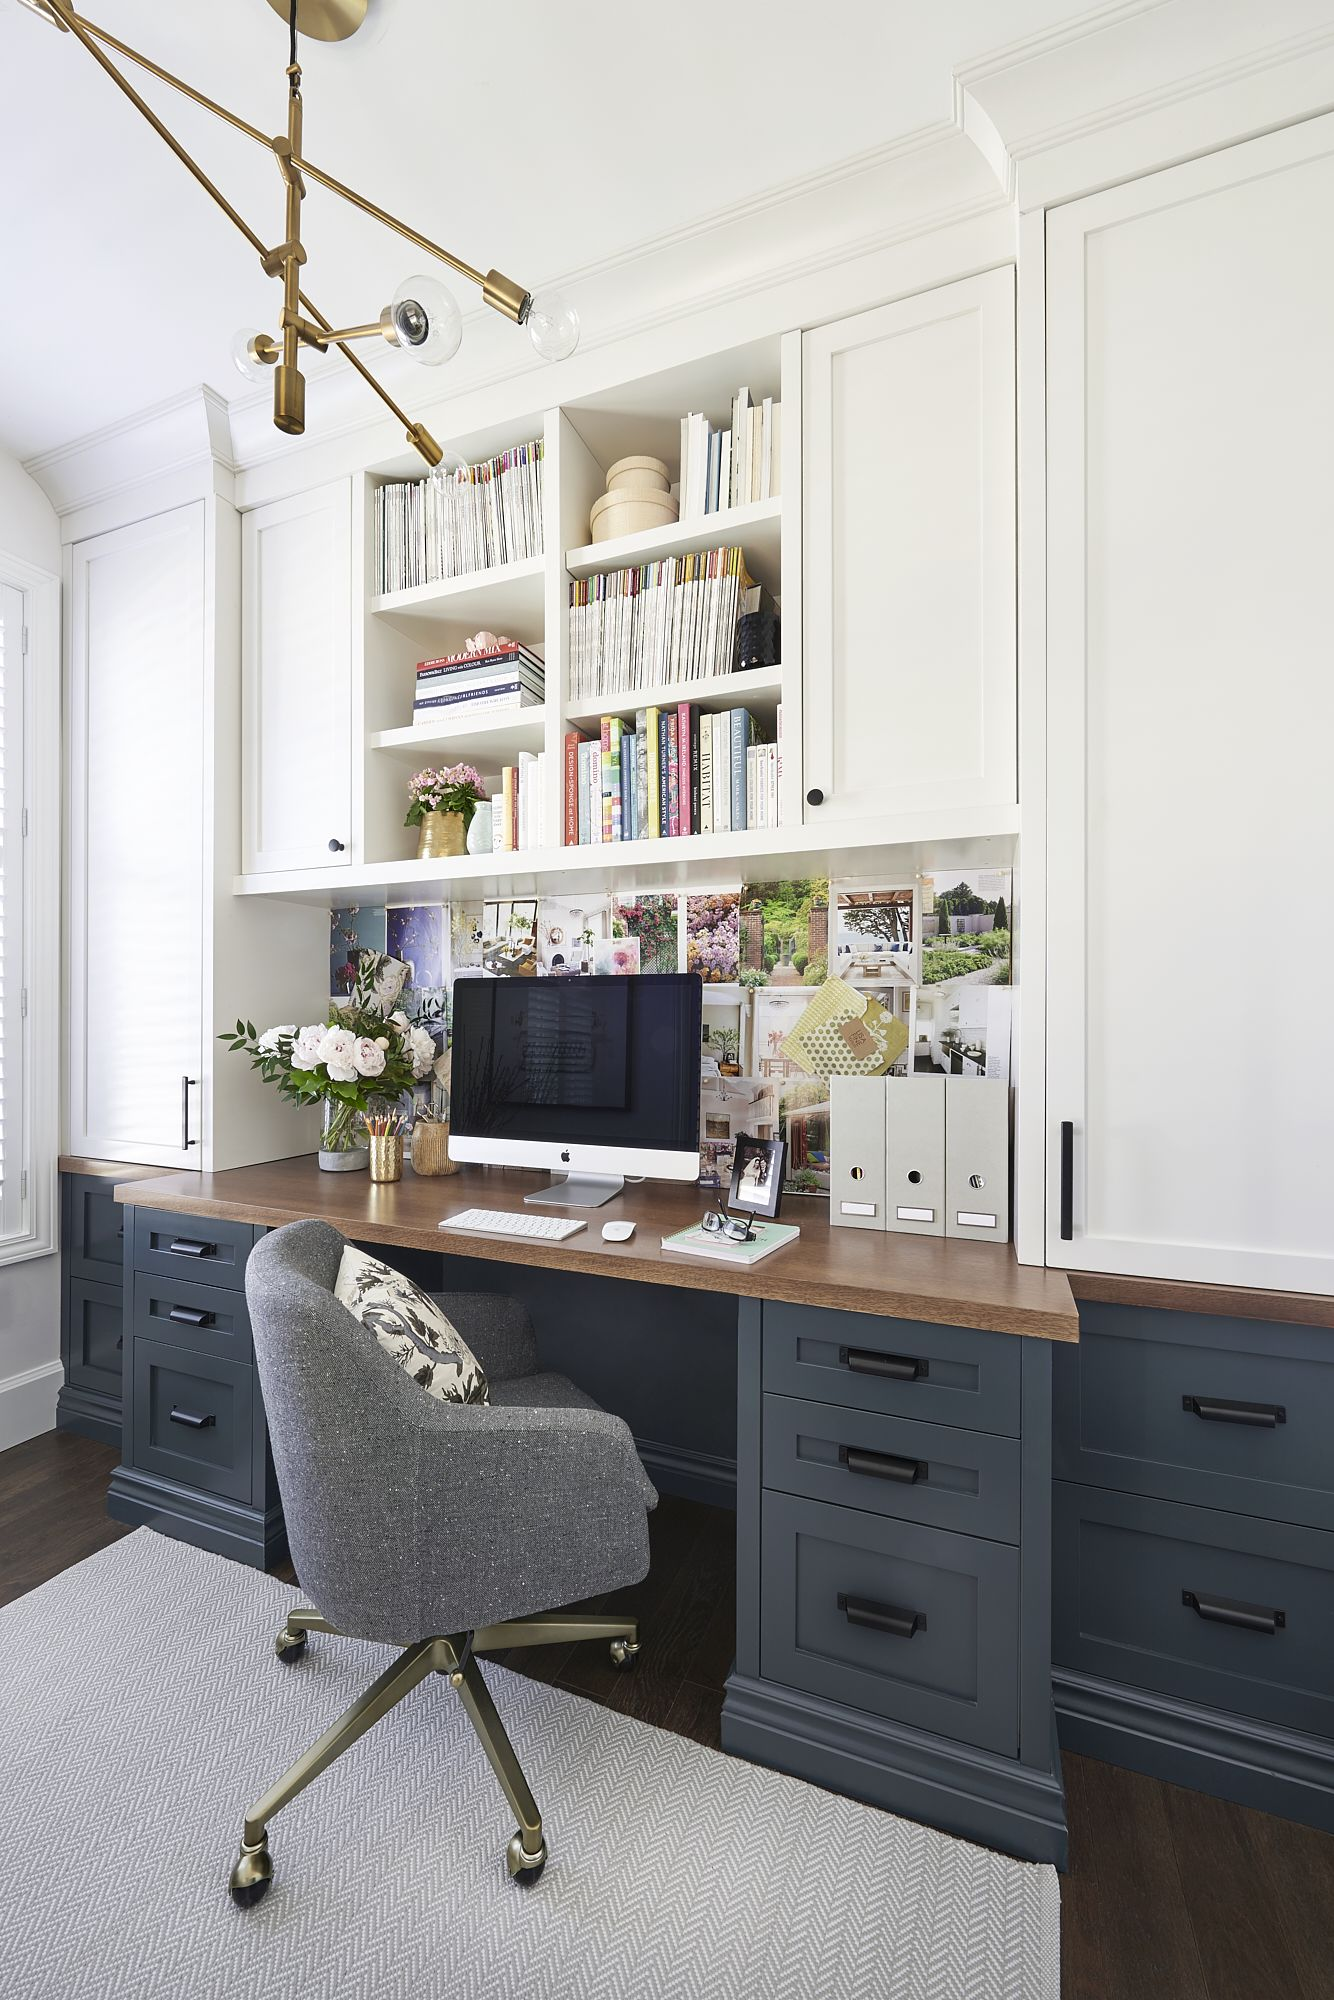 50 Home Office Ideas Working From Your Home With Your Style Space Crafts Office Makeover